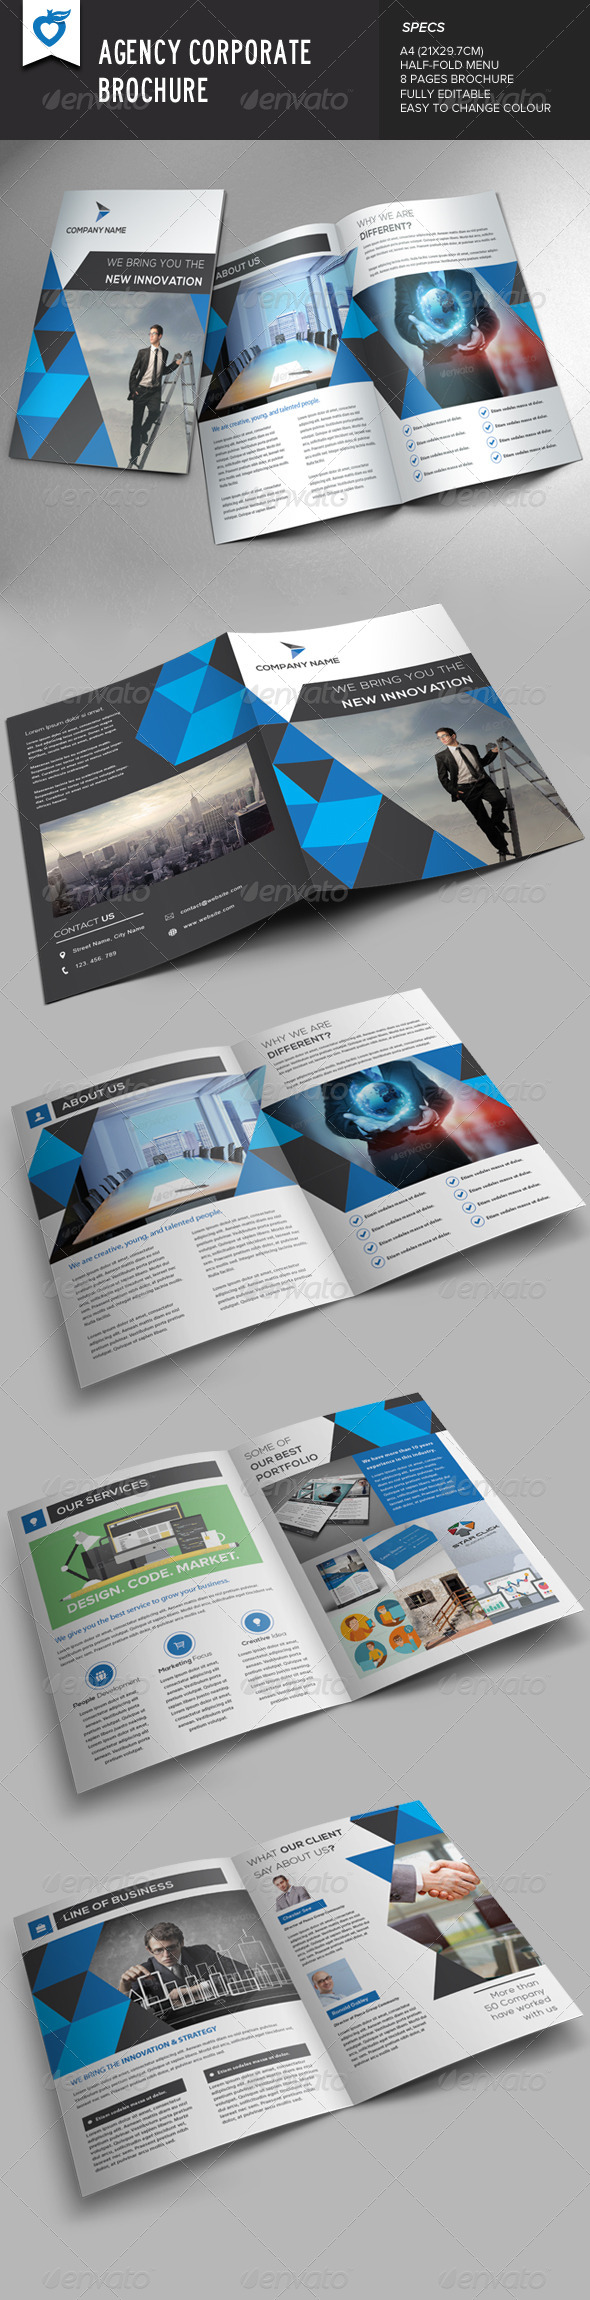 GraphicRiver Agency Corporate Brochure 8411482